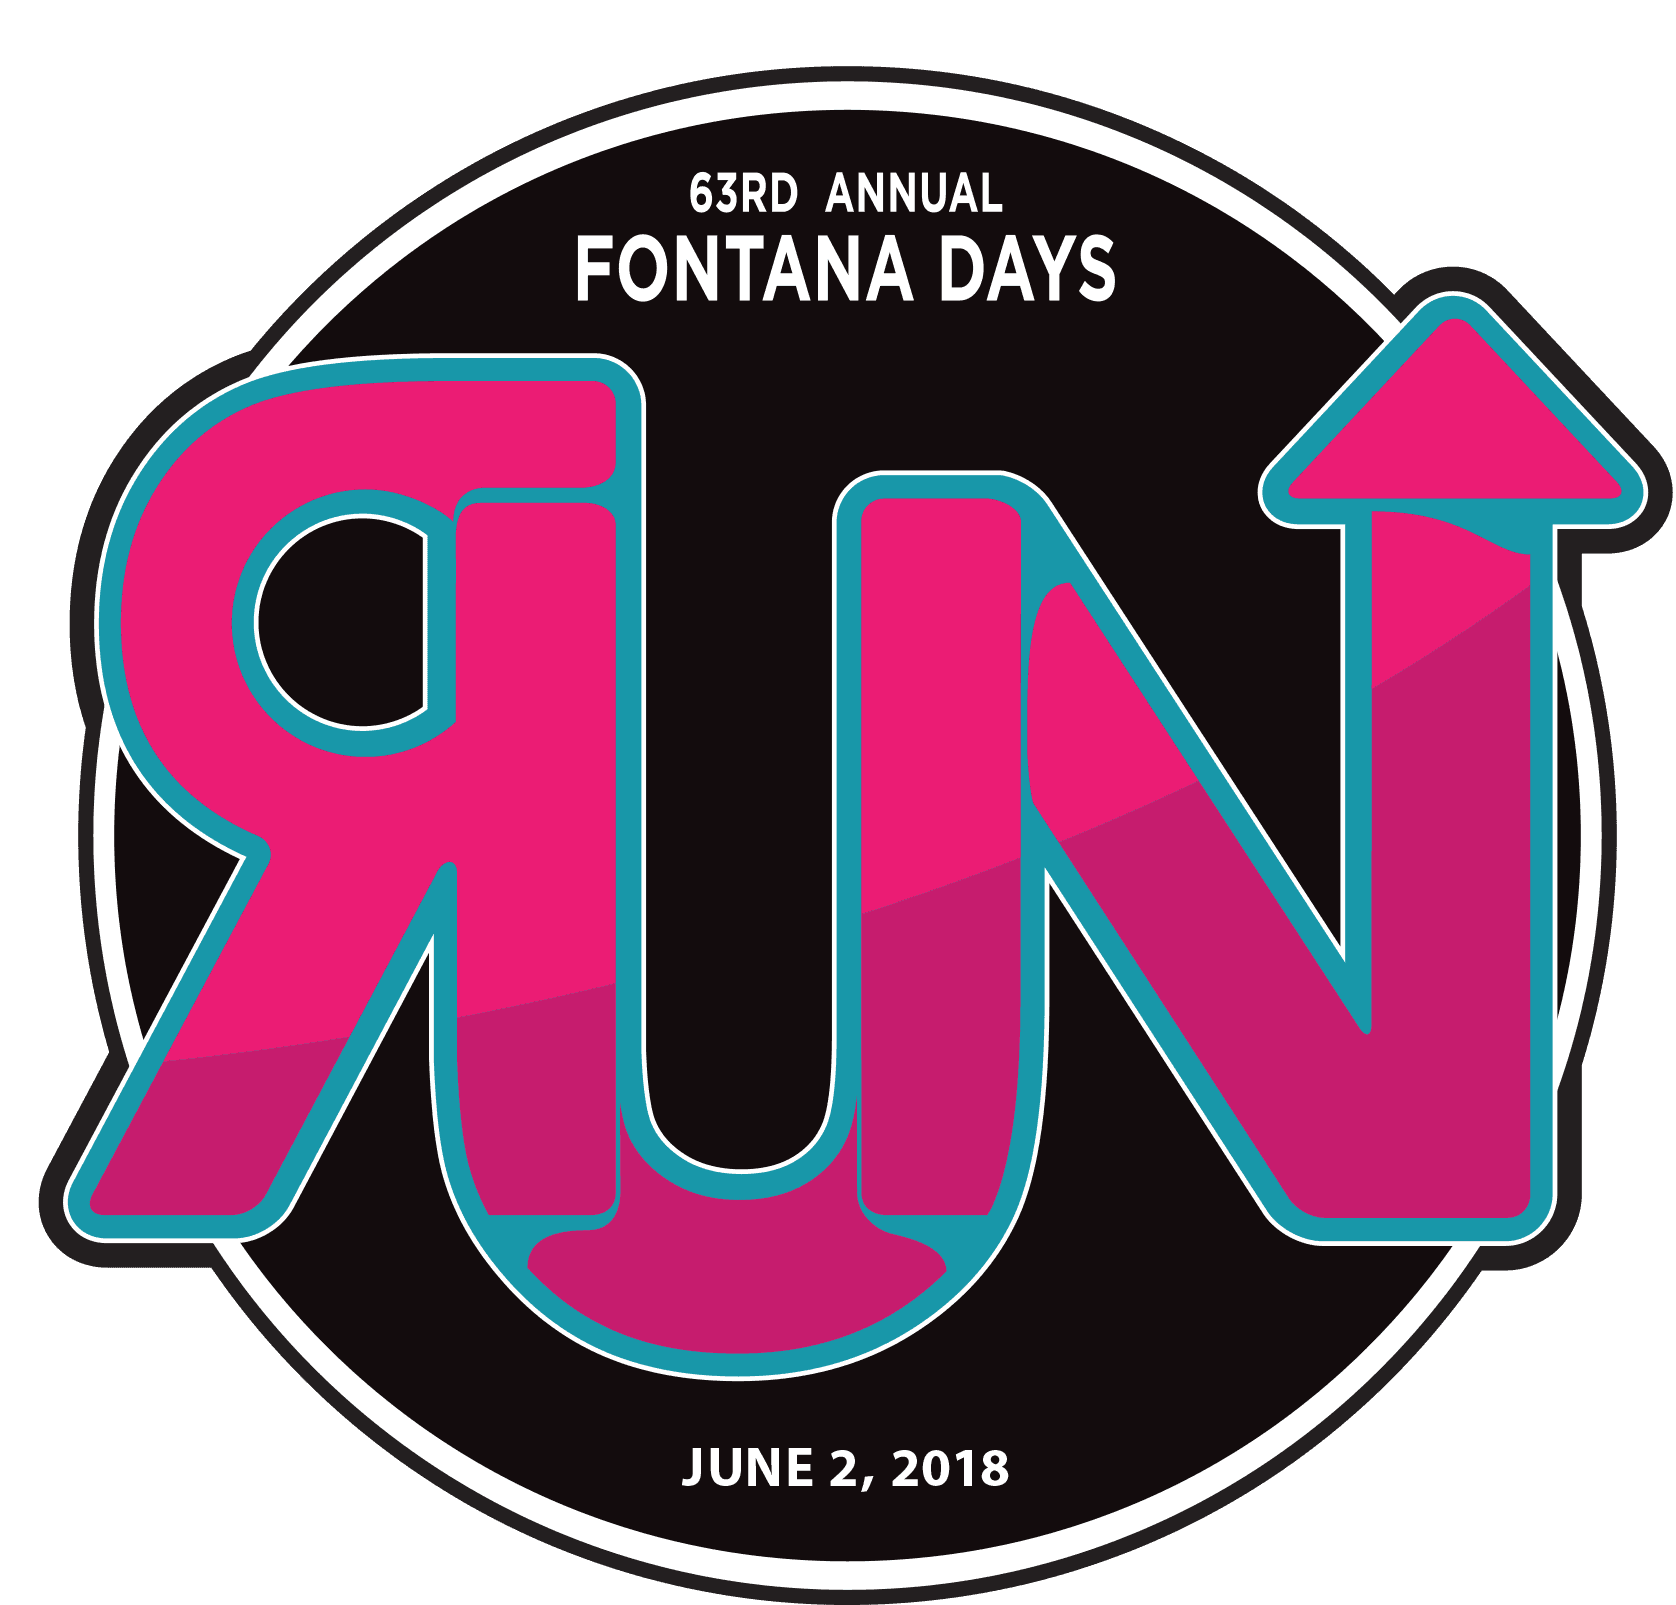 63rd Annual Fontana Days RUN June 2, 2018